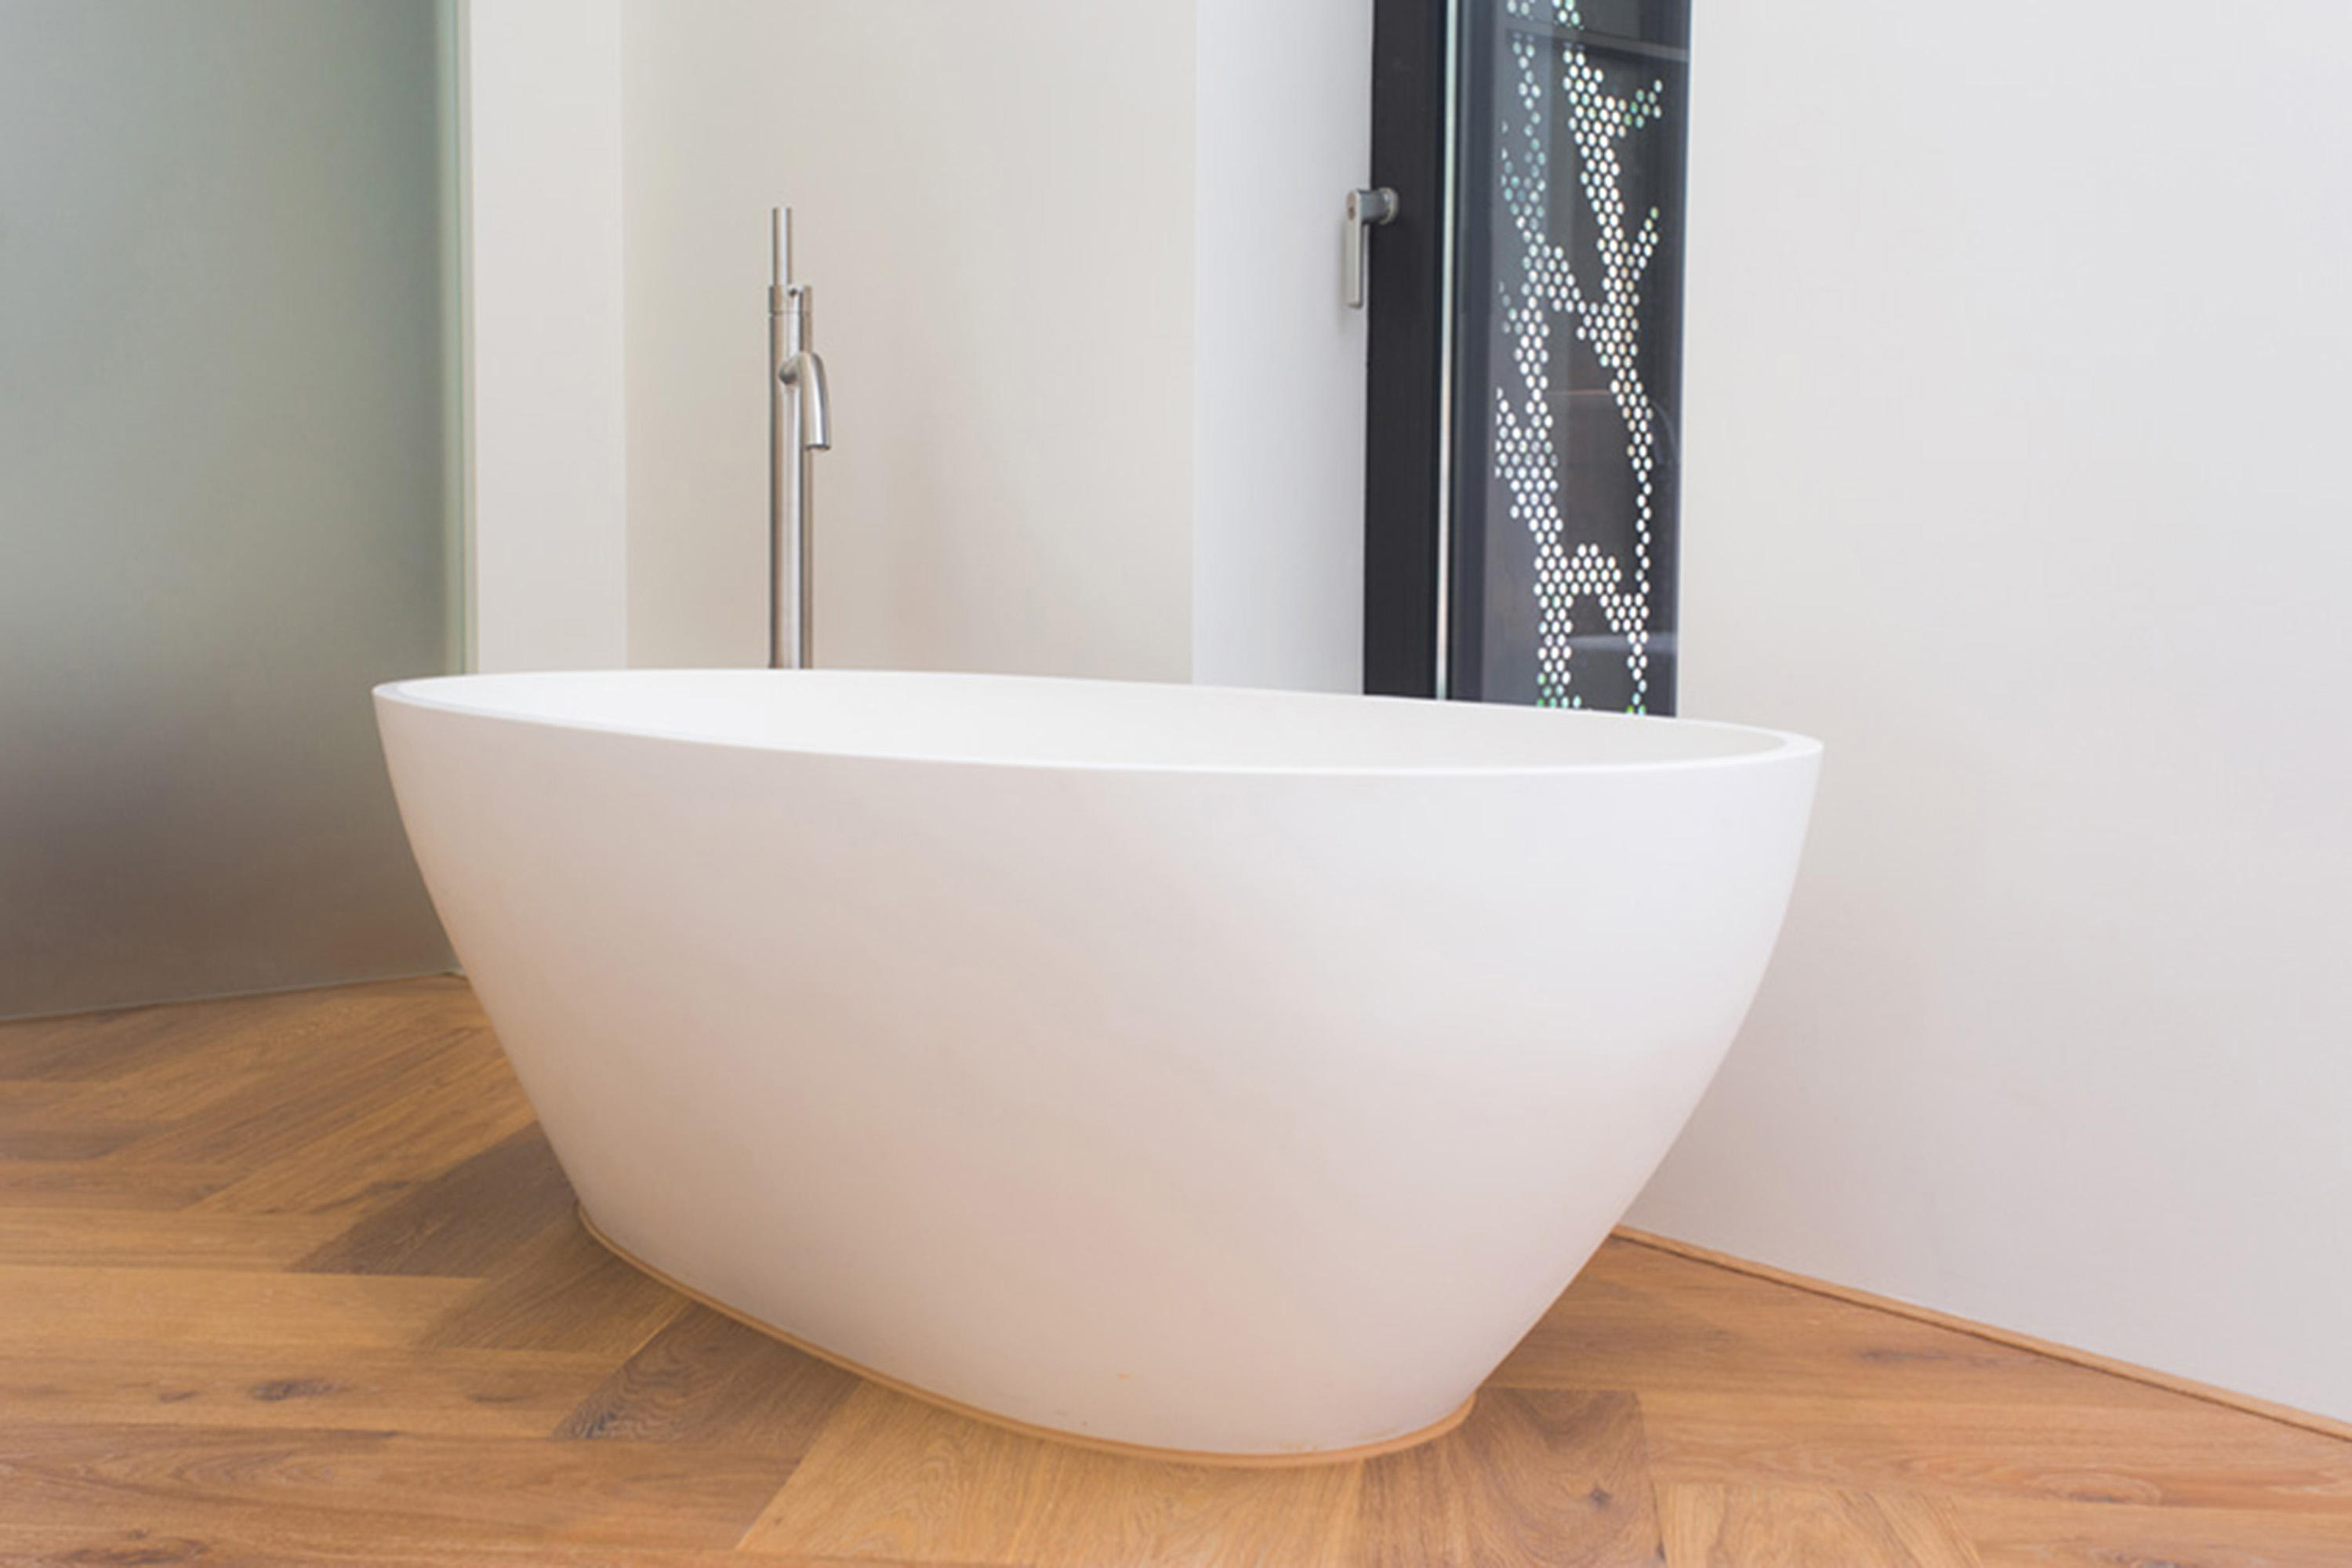 simple structure this purescape in web large aquatica standing bathrooms of the to be free refined s elegant bathtub allows yet solid wht contemporary bath used easily tulip both freestanding aquastone and products shape tub surface